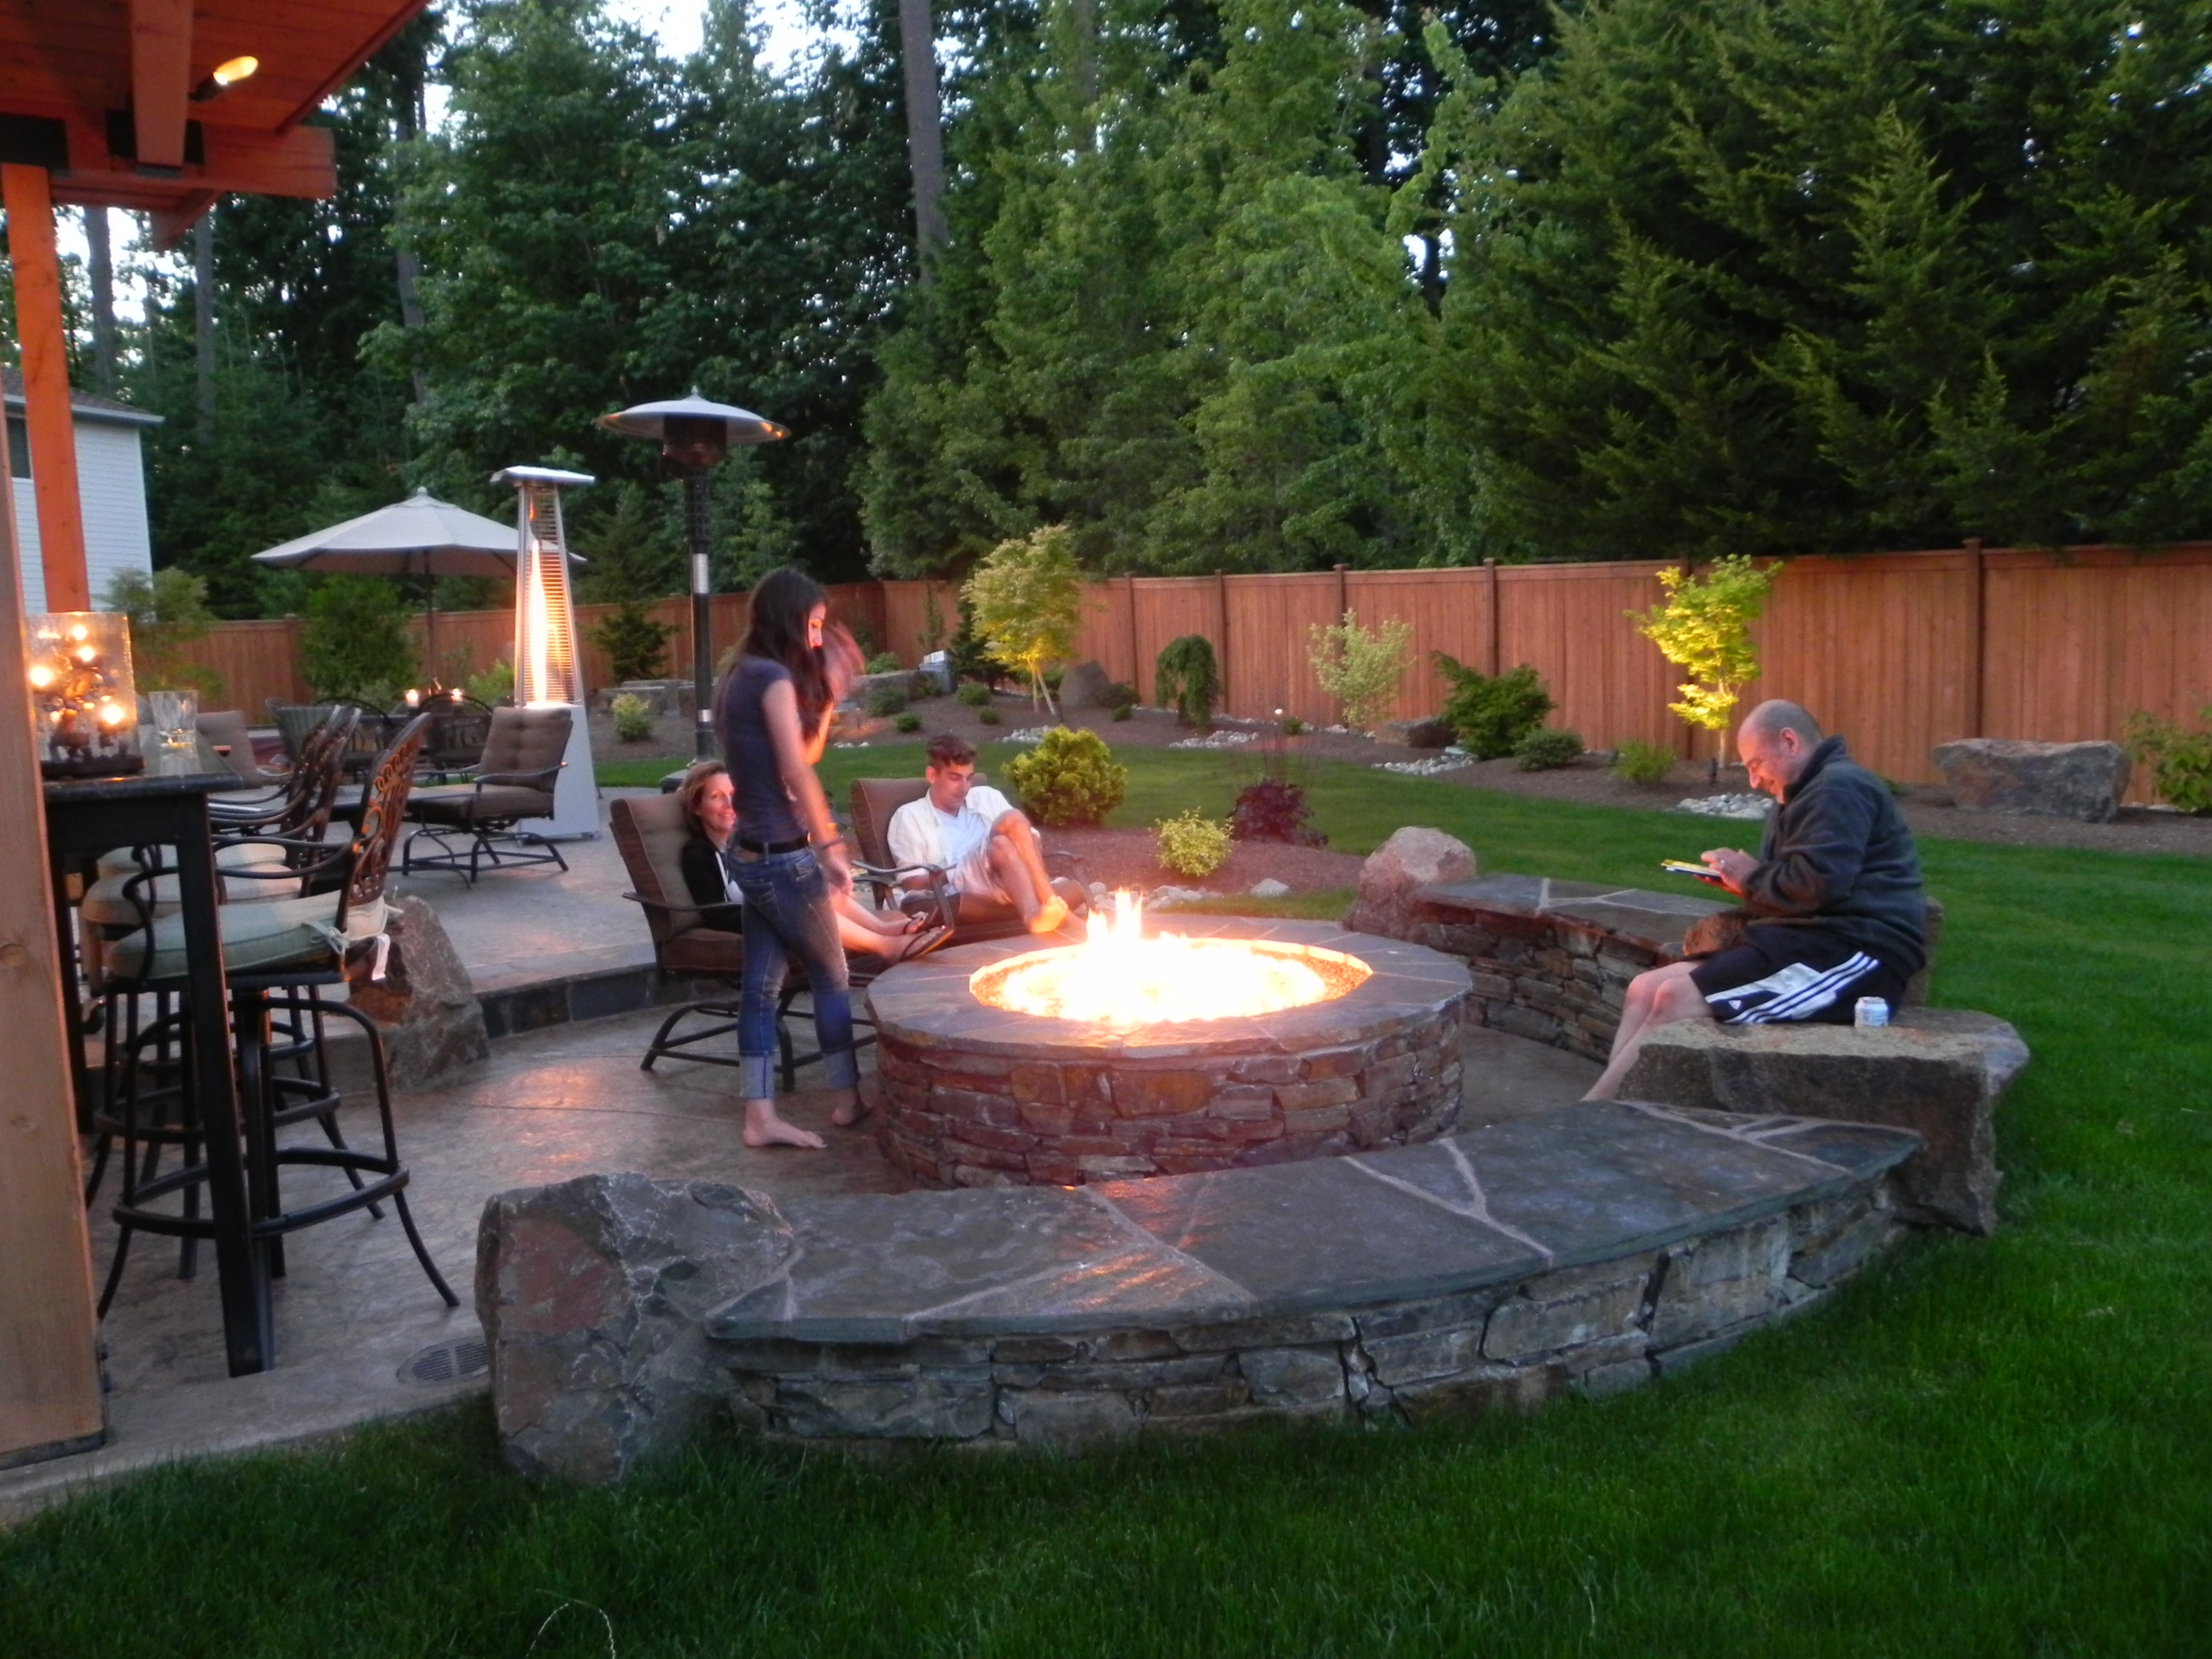 Backyard Fire Pit Landscaping Ideas Photo Design Your Home - Landscaping ideas backyard